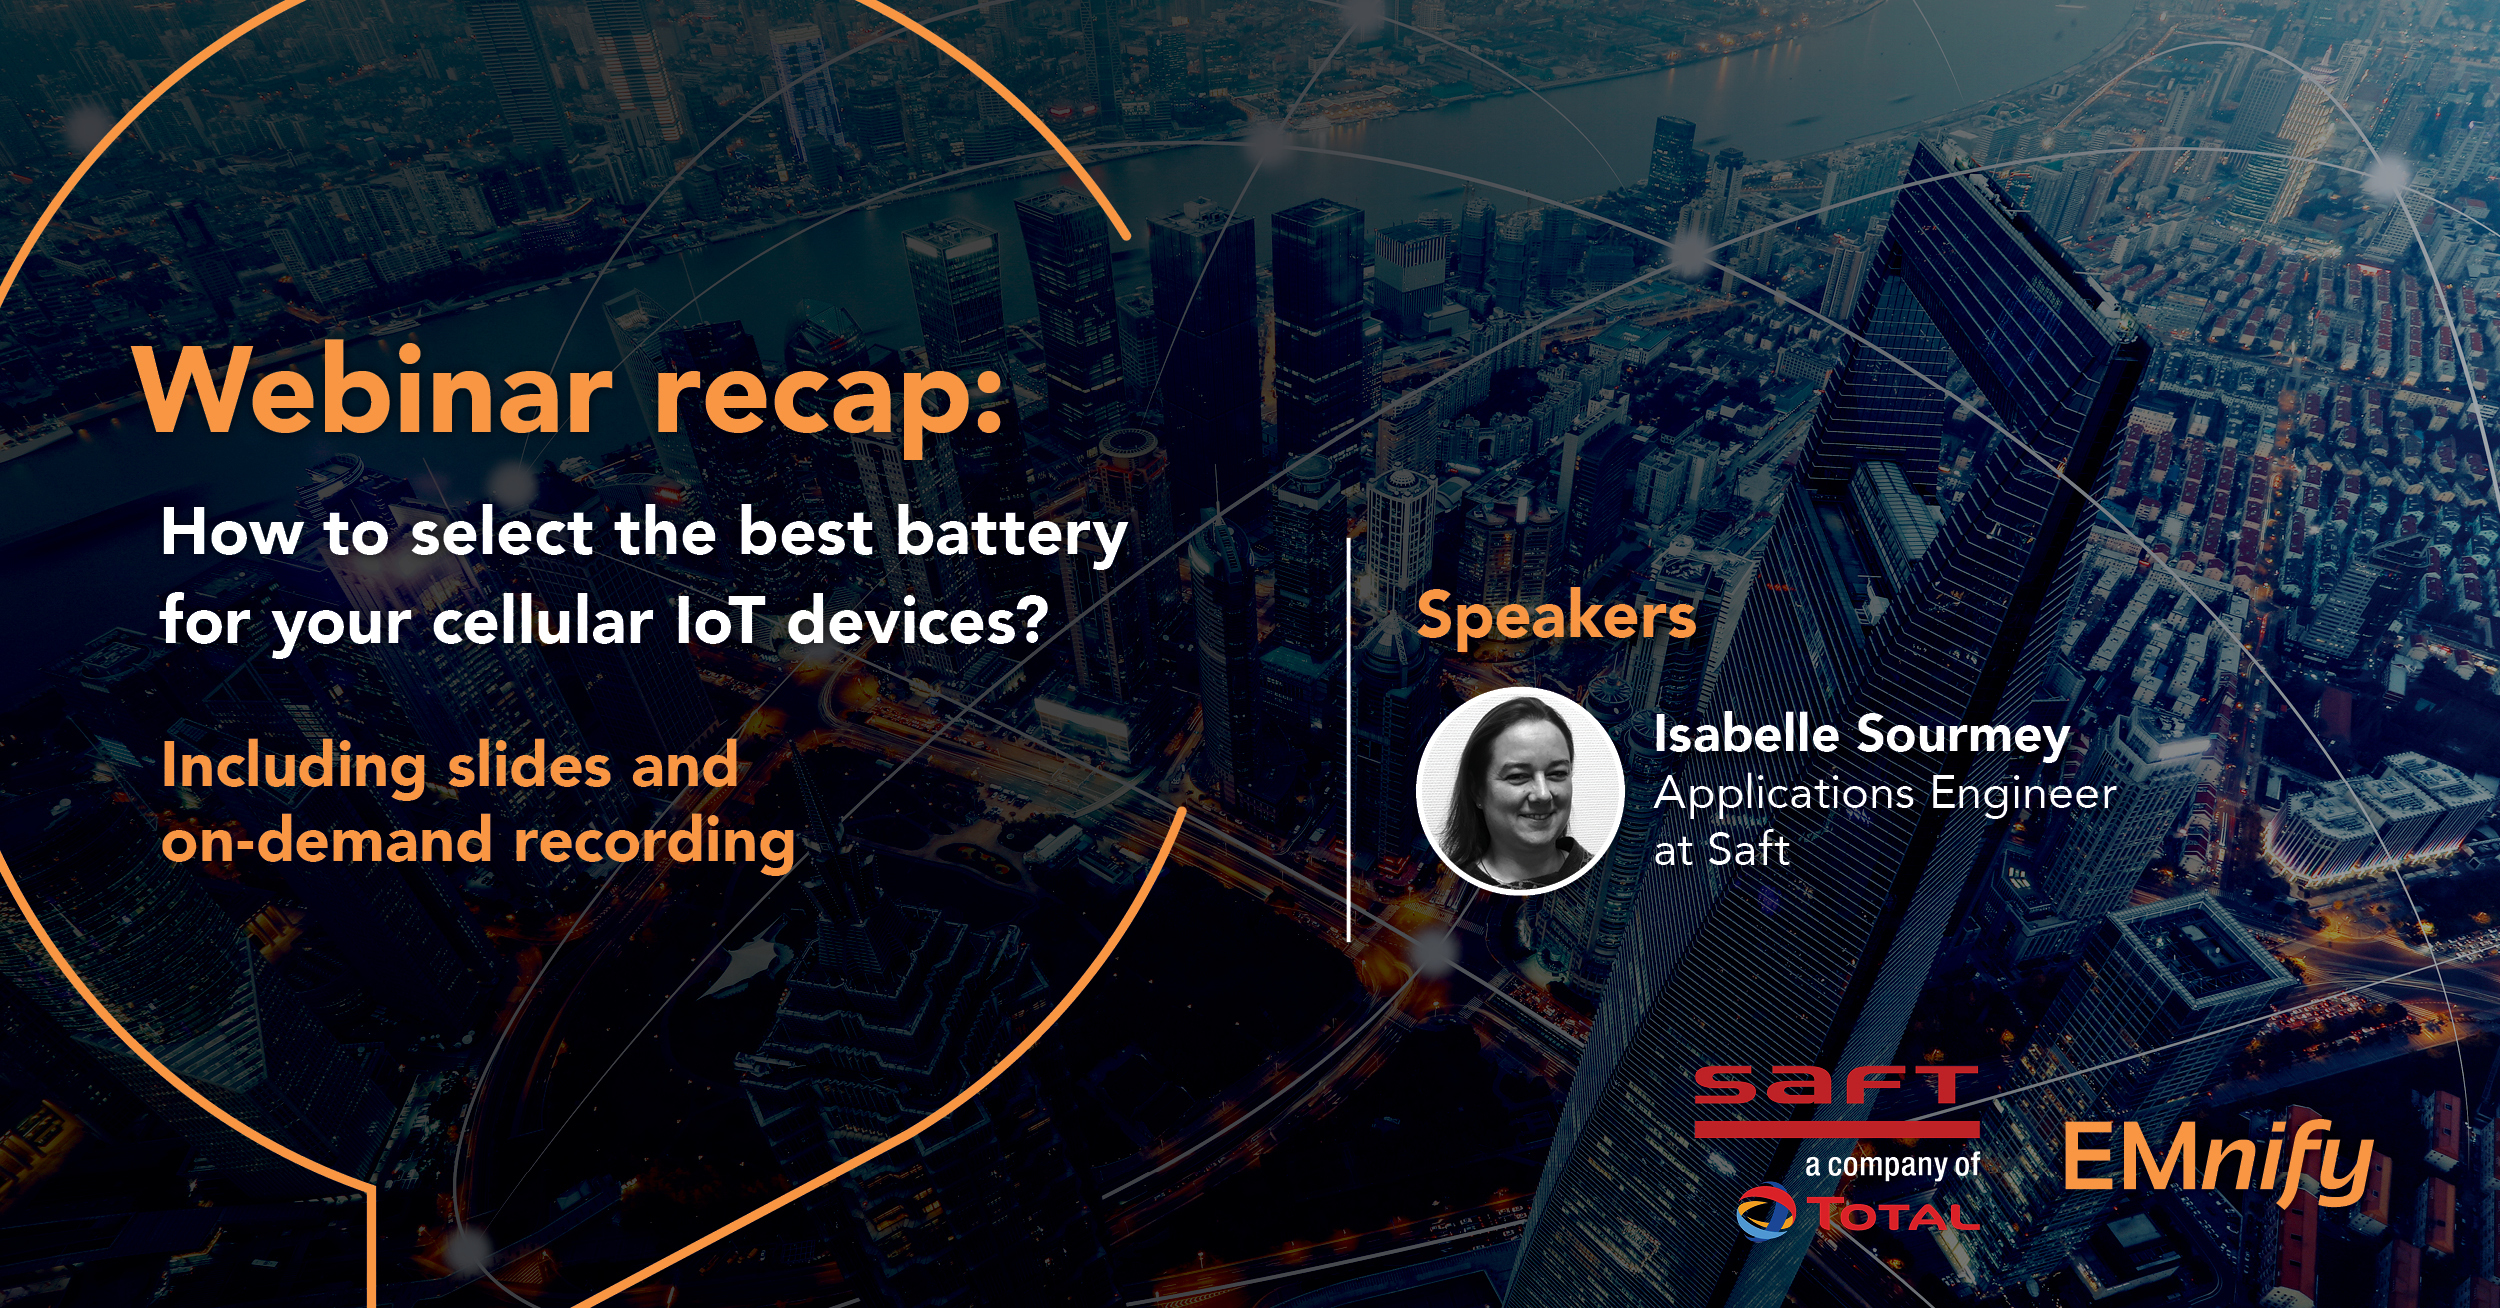 Webinar recap: How to select the best battery for your cellular IoT devices?